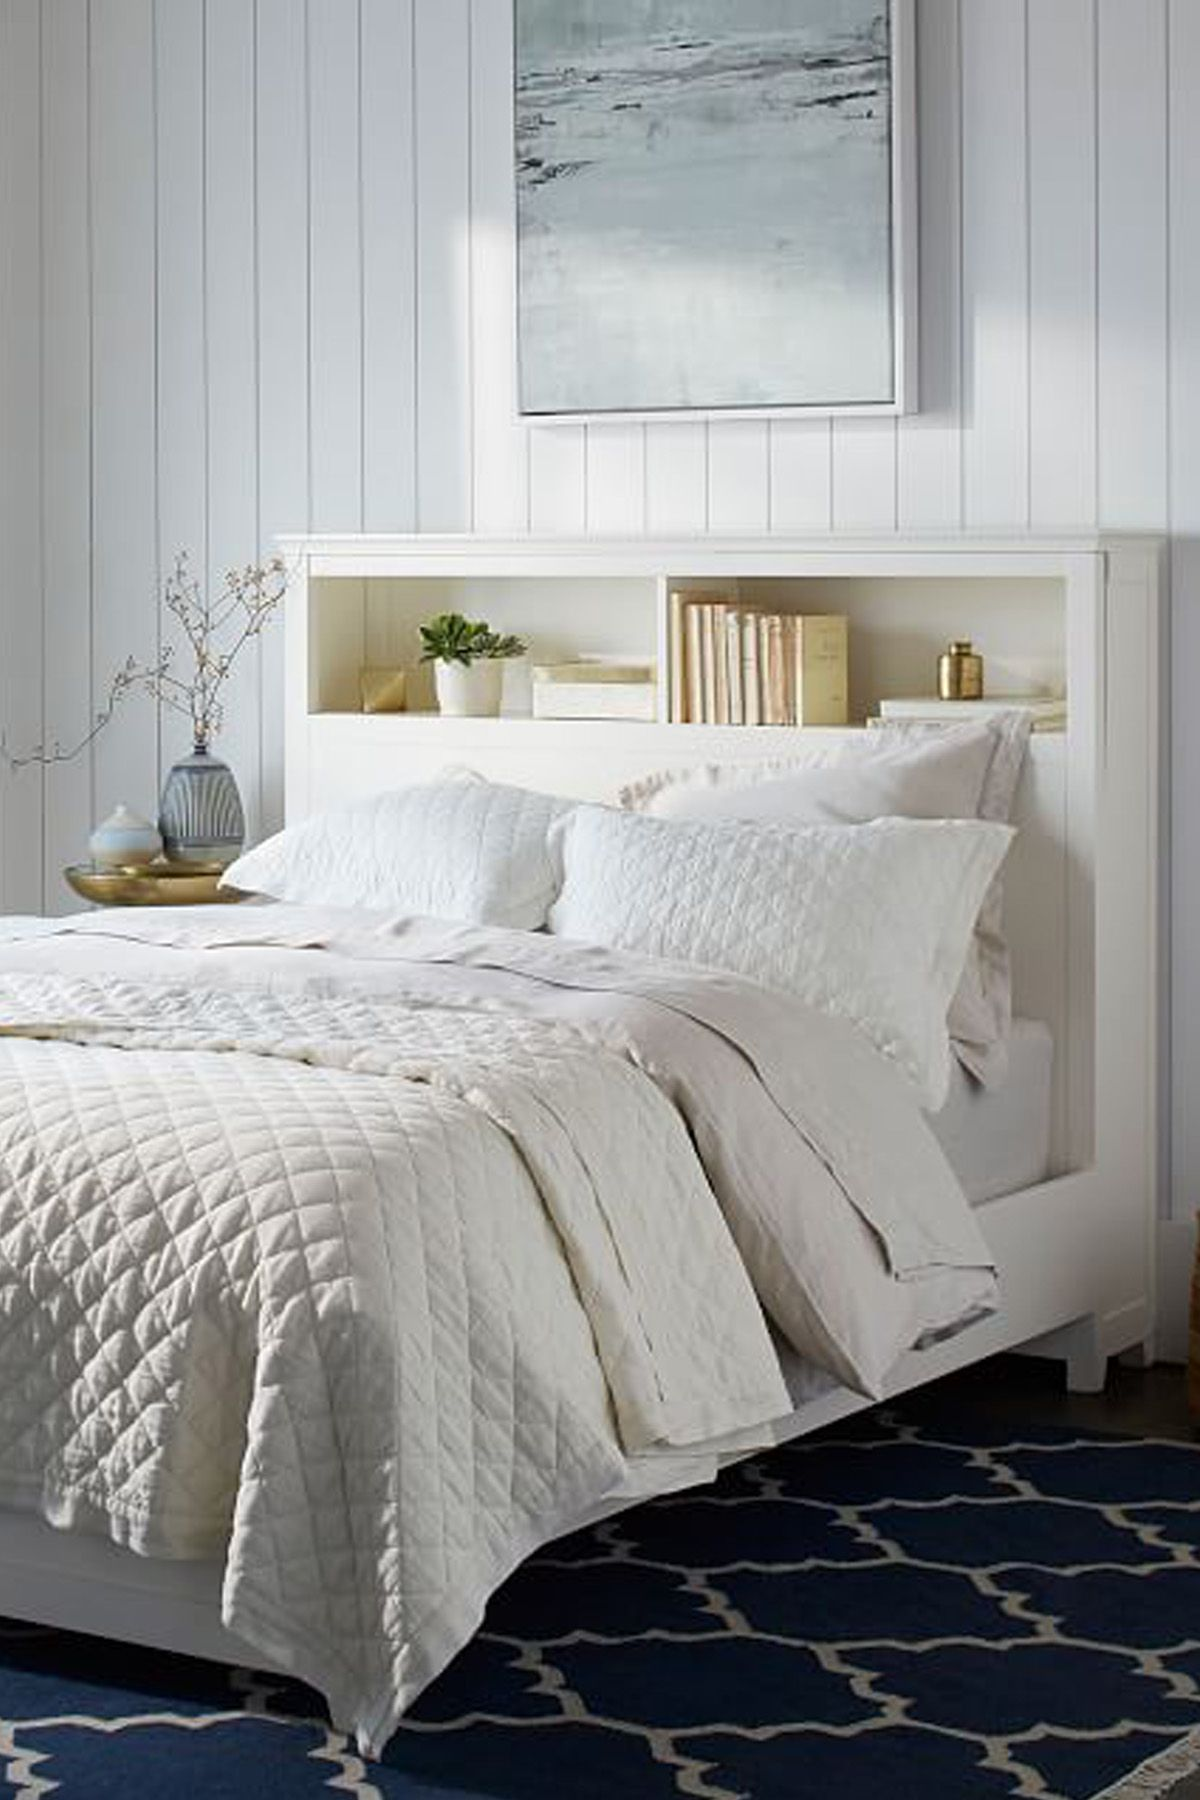 headboard ideas & 20 Best Headboard Ideas - Unique Designs for Bed Headboards